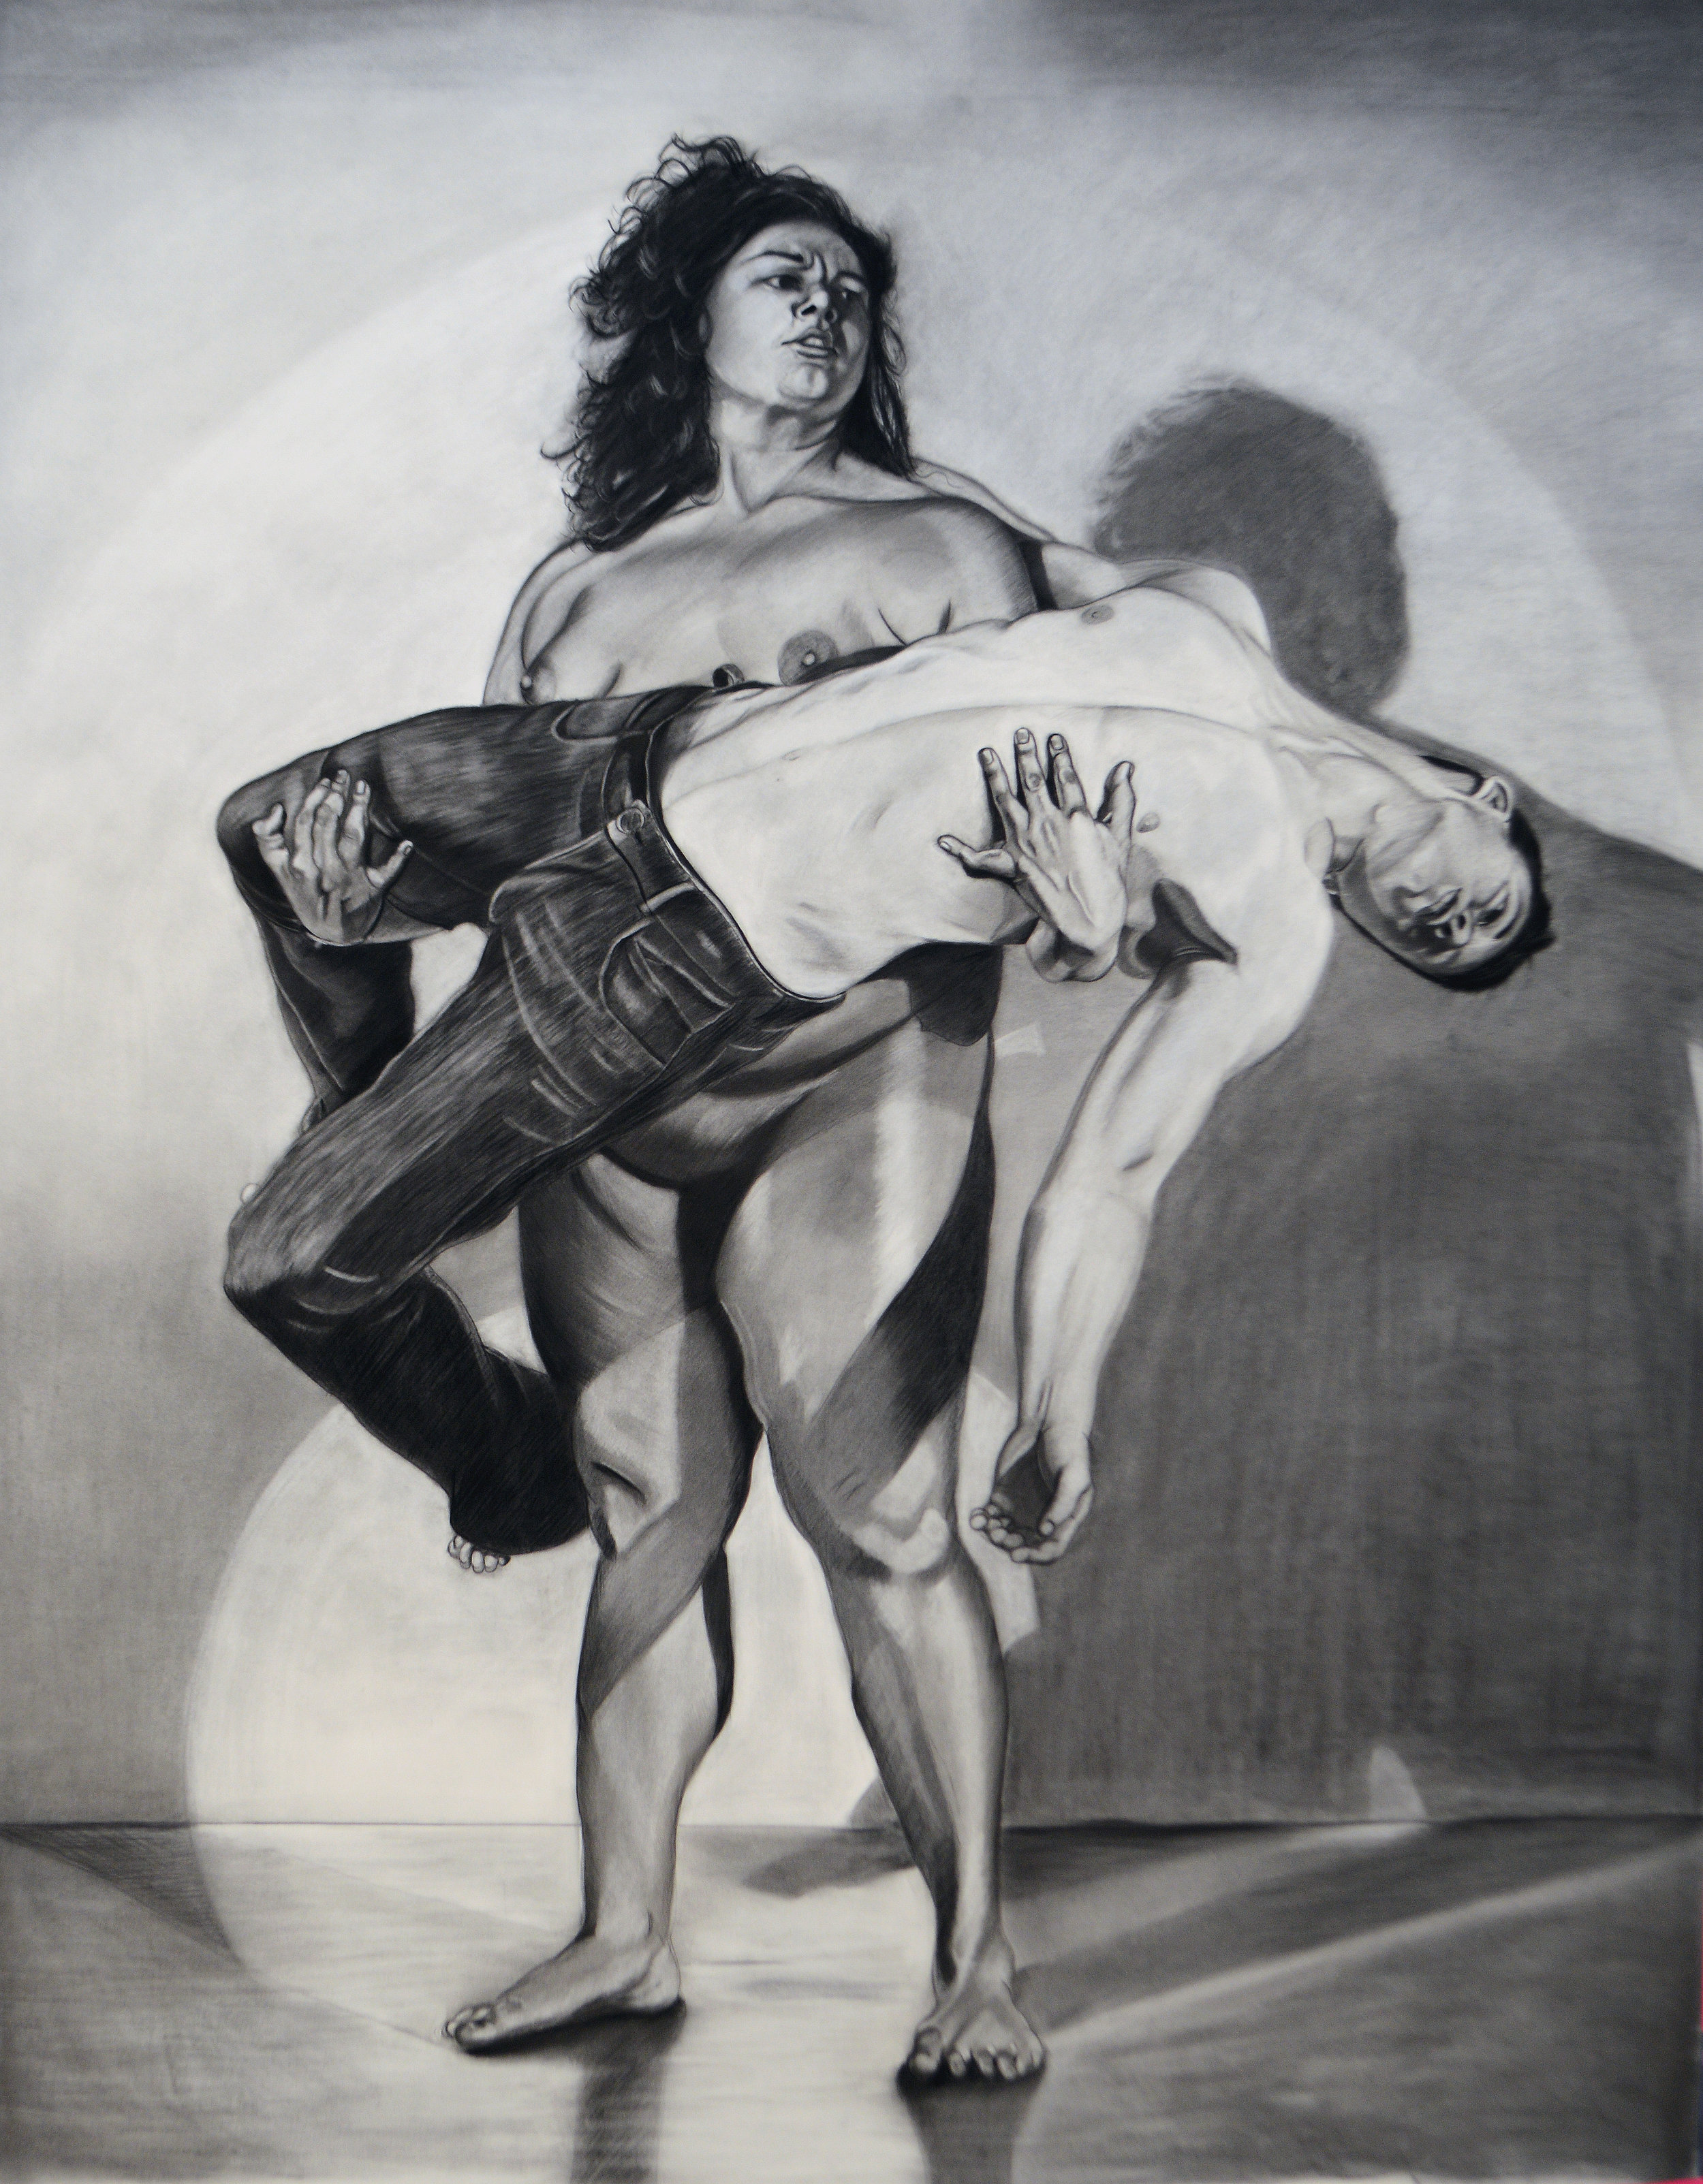 Pieta 89 x 72 inches, Charcoal on paper